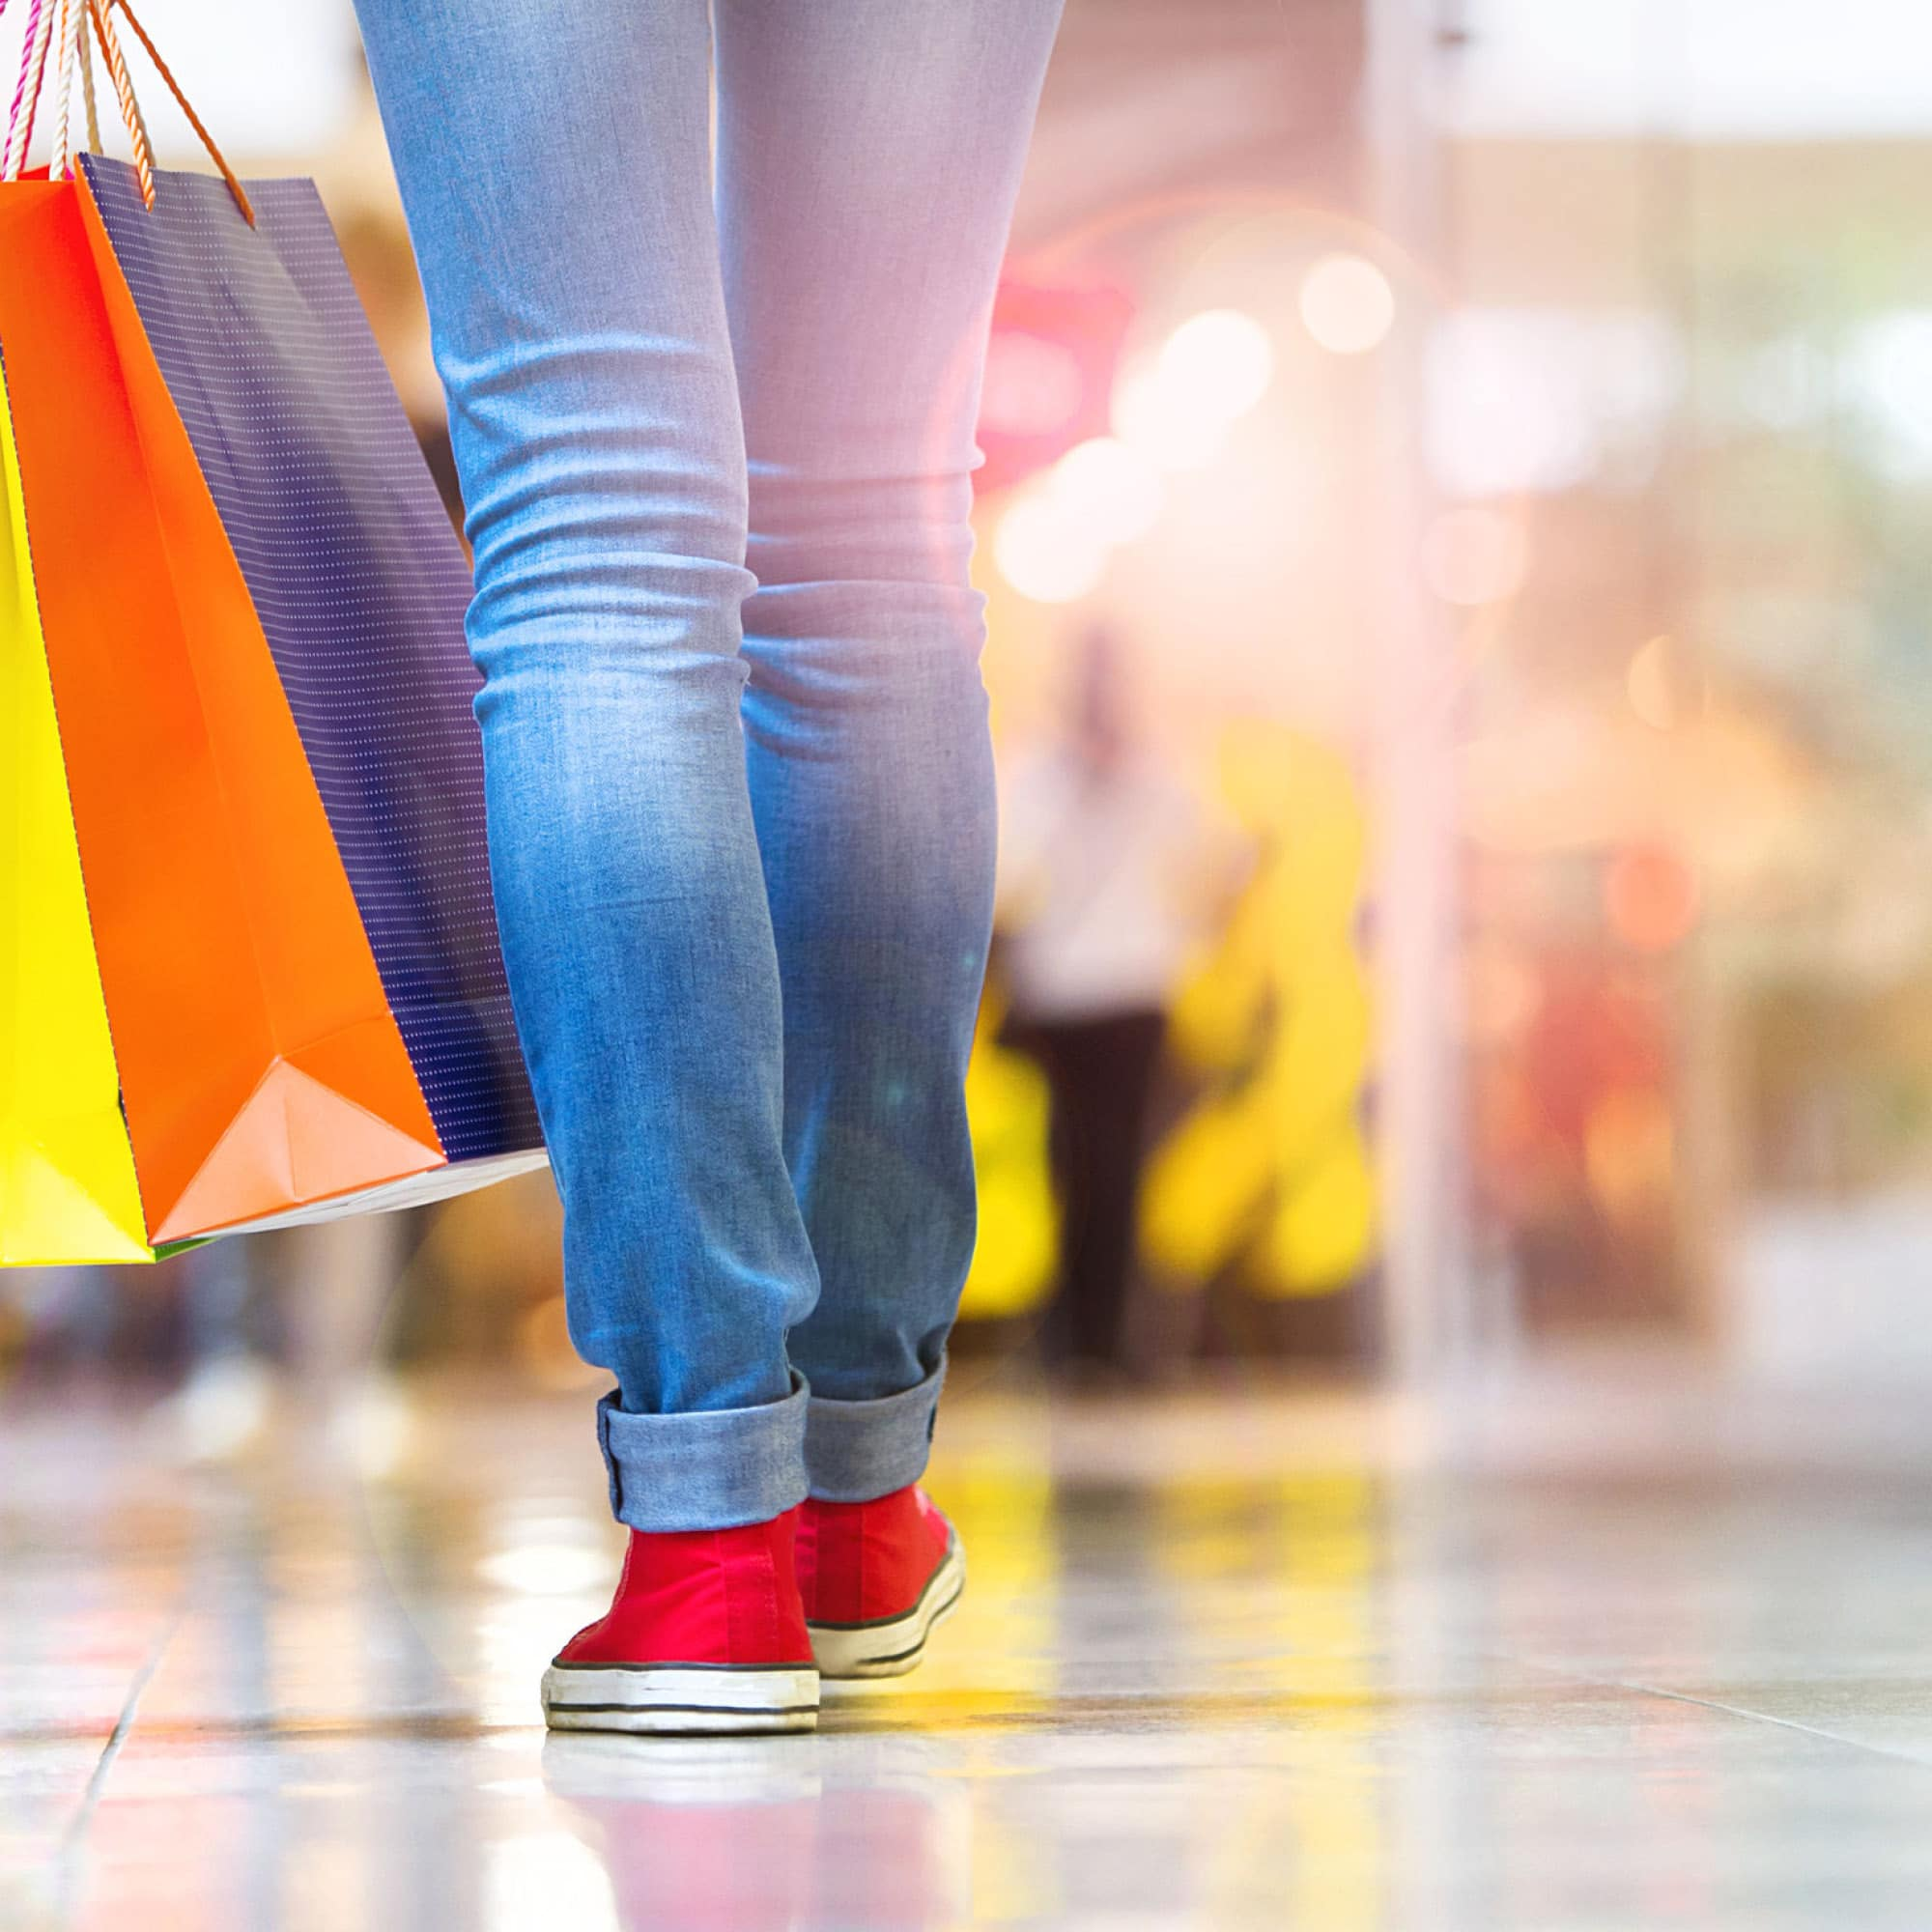 The first step in clearing out the clutter in our lives is learning how to stop the flow. Of course sometimes that is easier said than done, especially when retailers are trying their very hardest to get us to buy more! If you've ever walked out of a store with more than you intended to, you NEED to understand these 21 retail tricks (and how to resist them!)